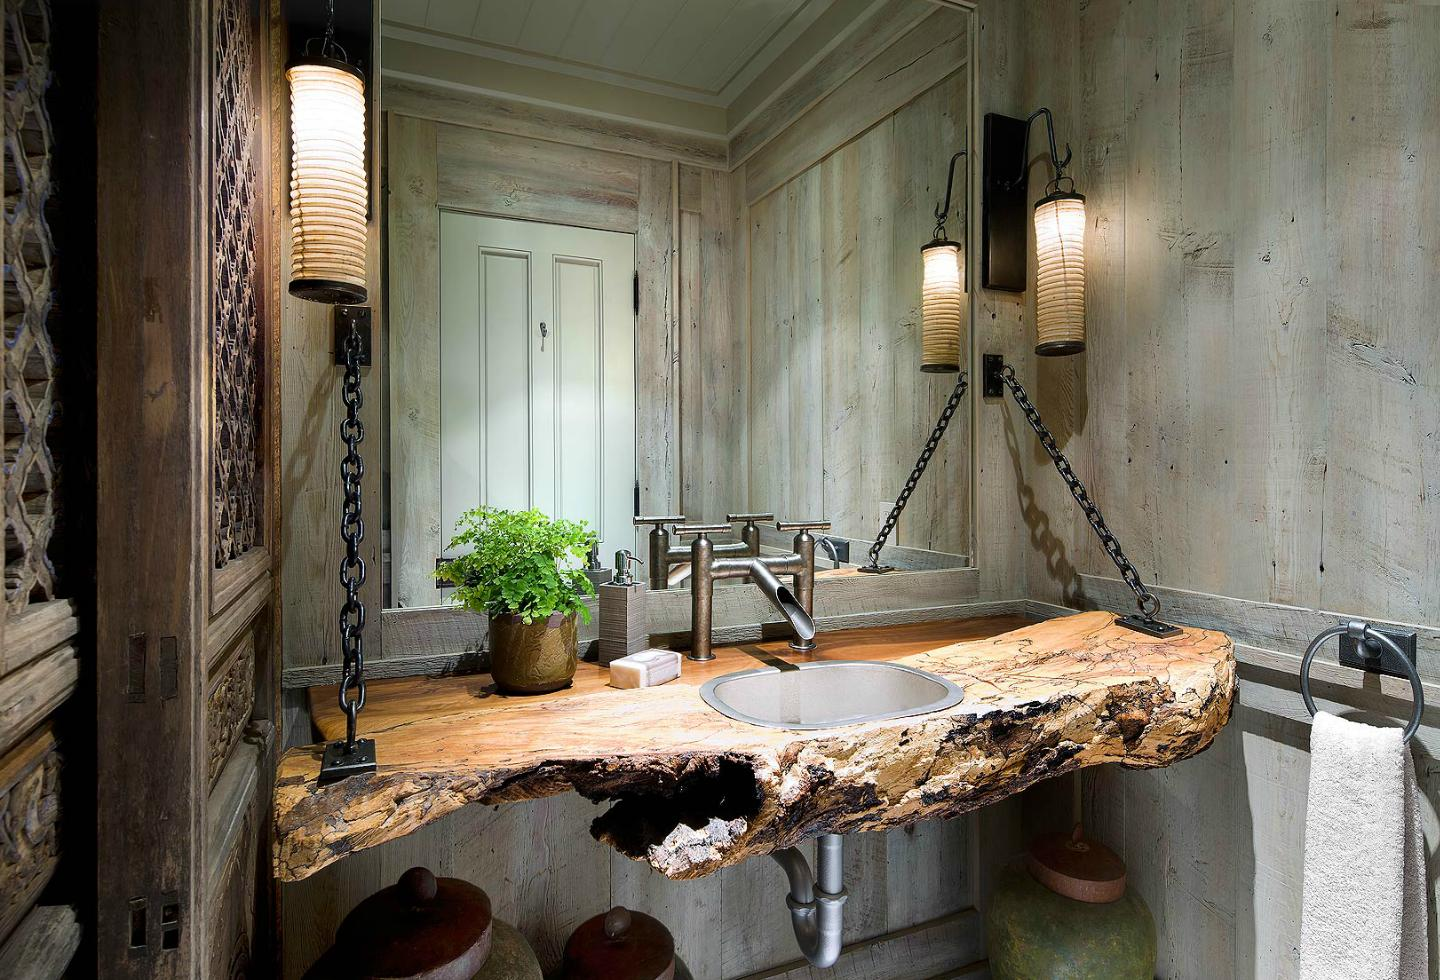 prepossessing-rustic-style-lovely-unique-carving-wood-wall-and-chic-nature-wood-wall-mount-vanity-for-creative-traditional-small-floorspace-rustic-bat